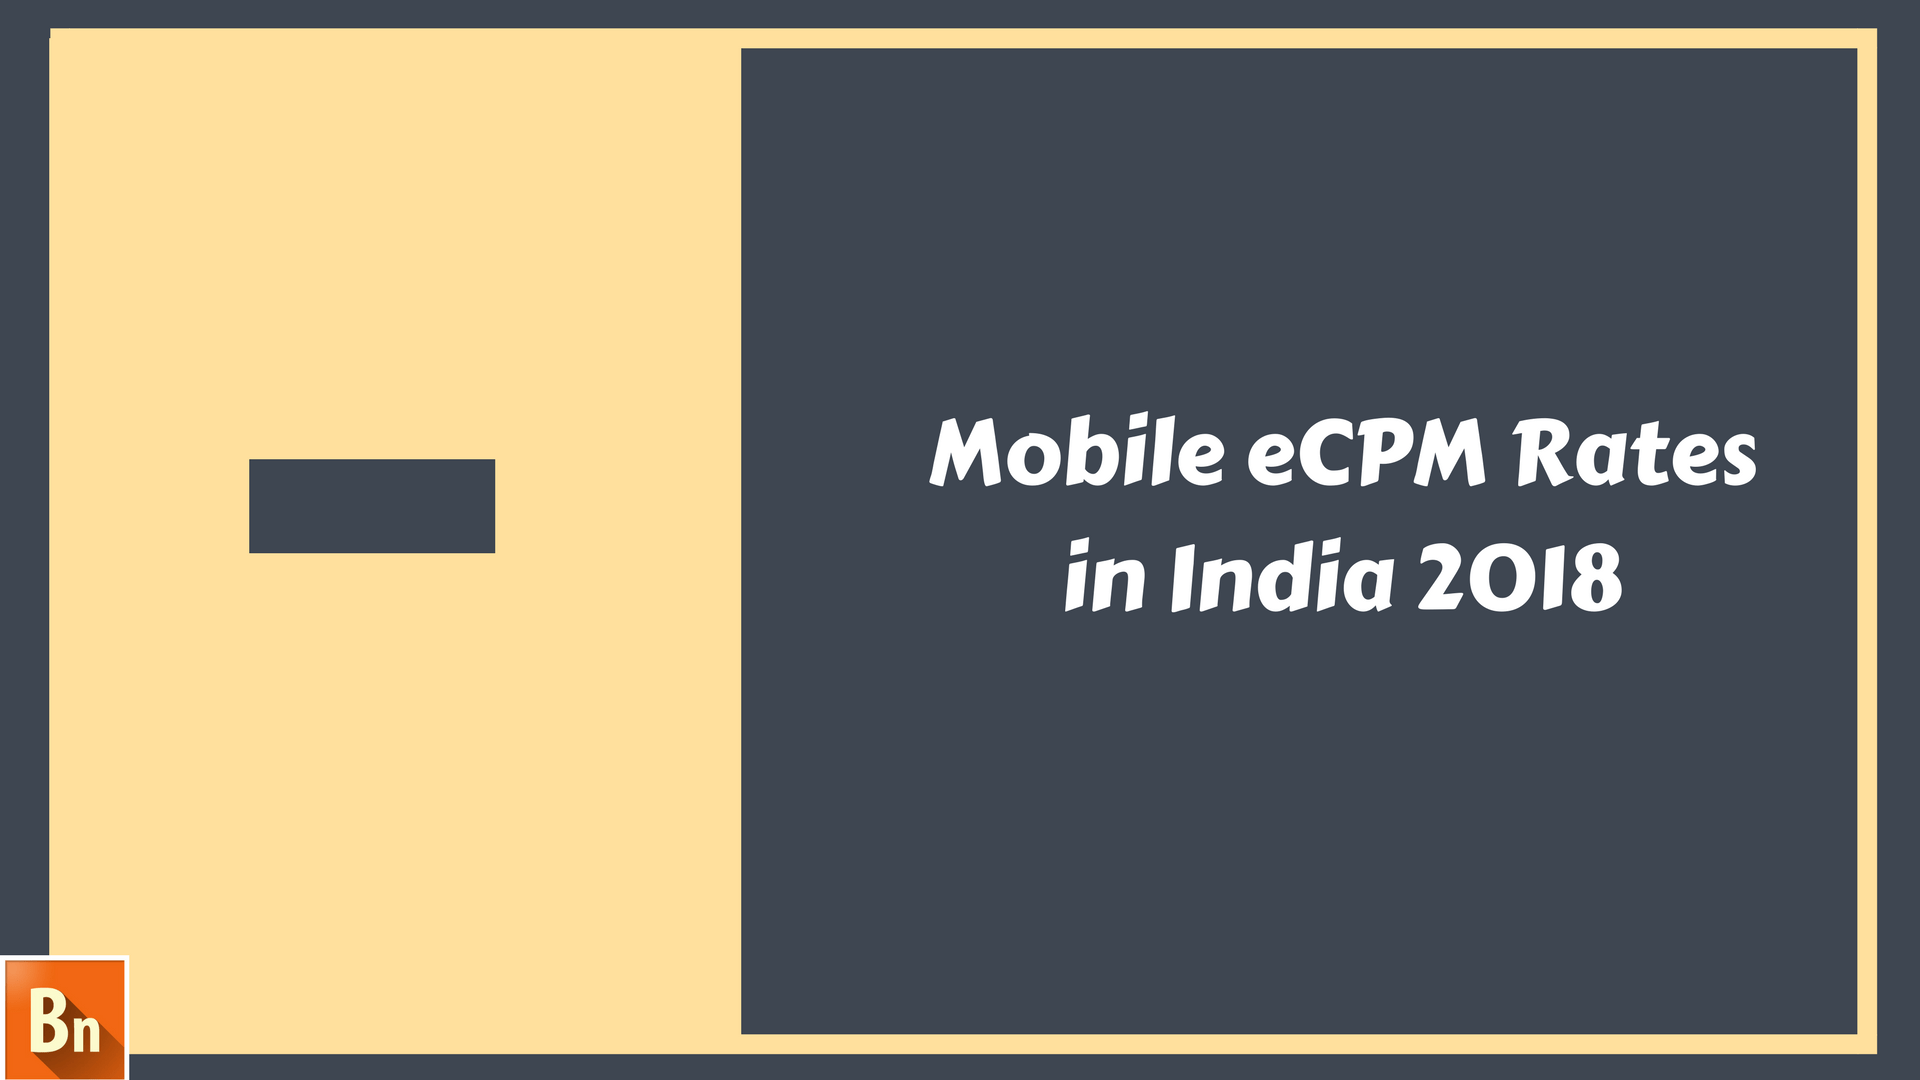 Mobile eCPM Rates in India 2018